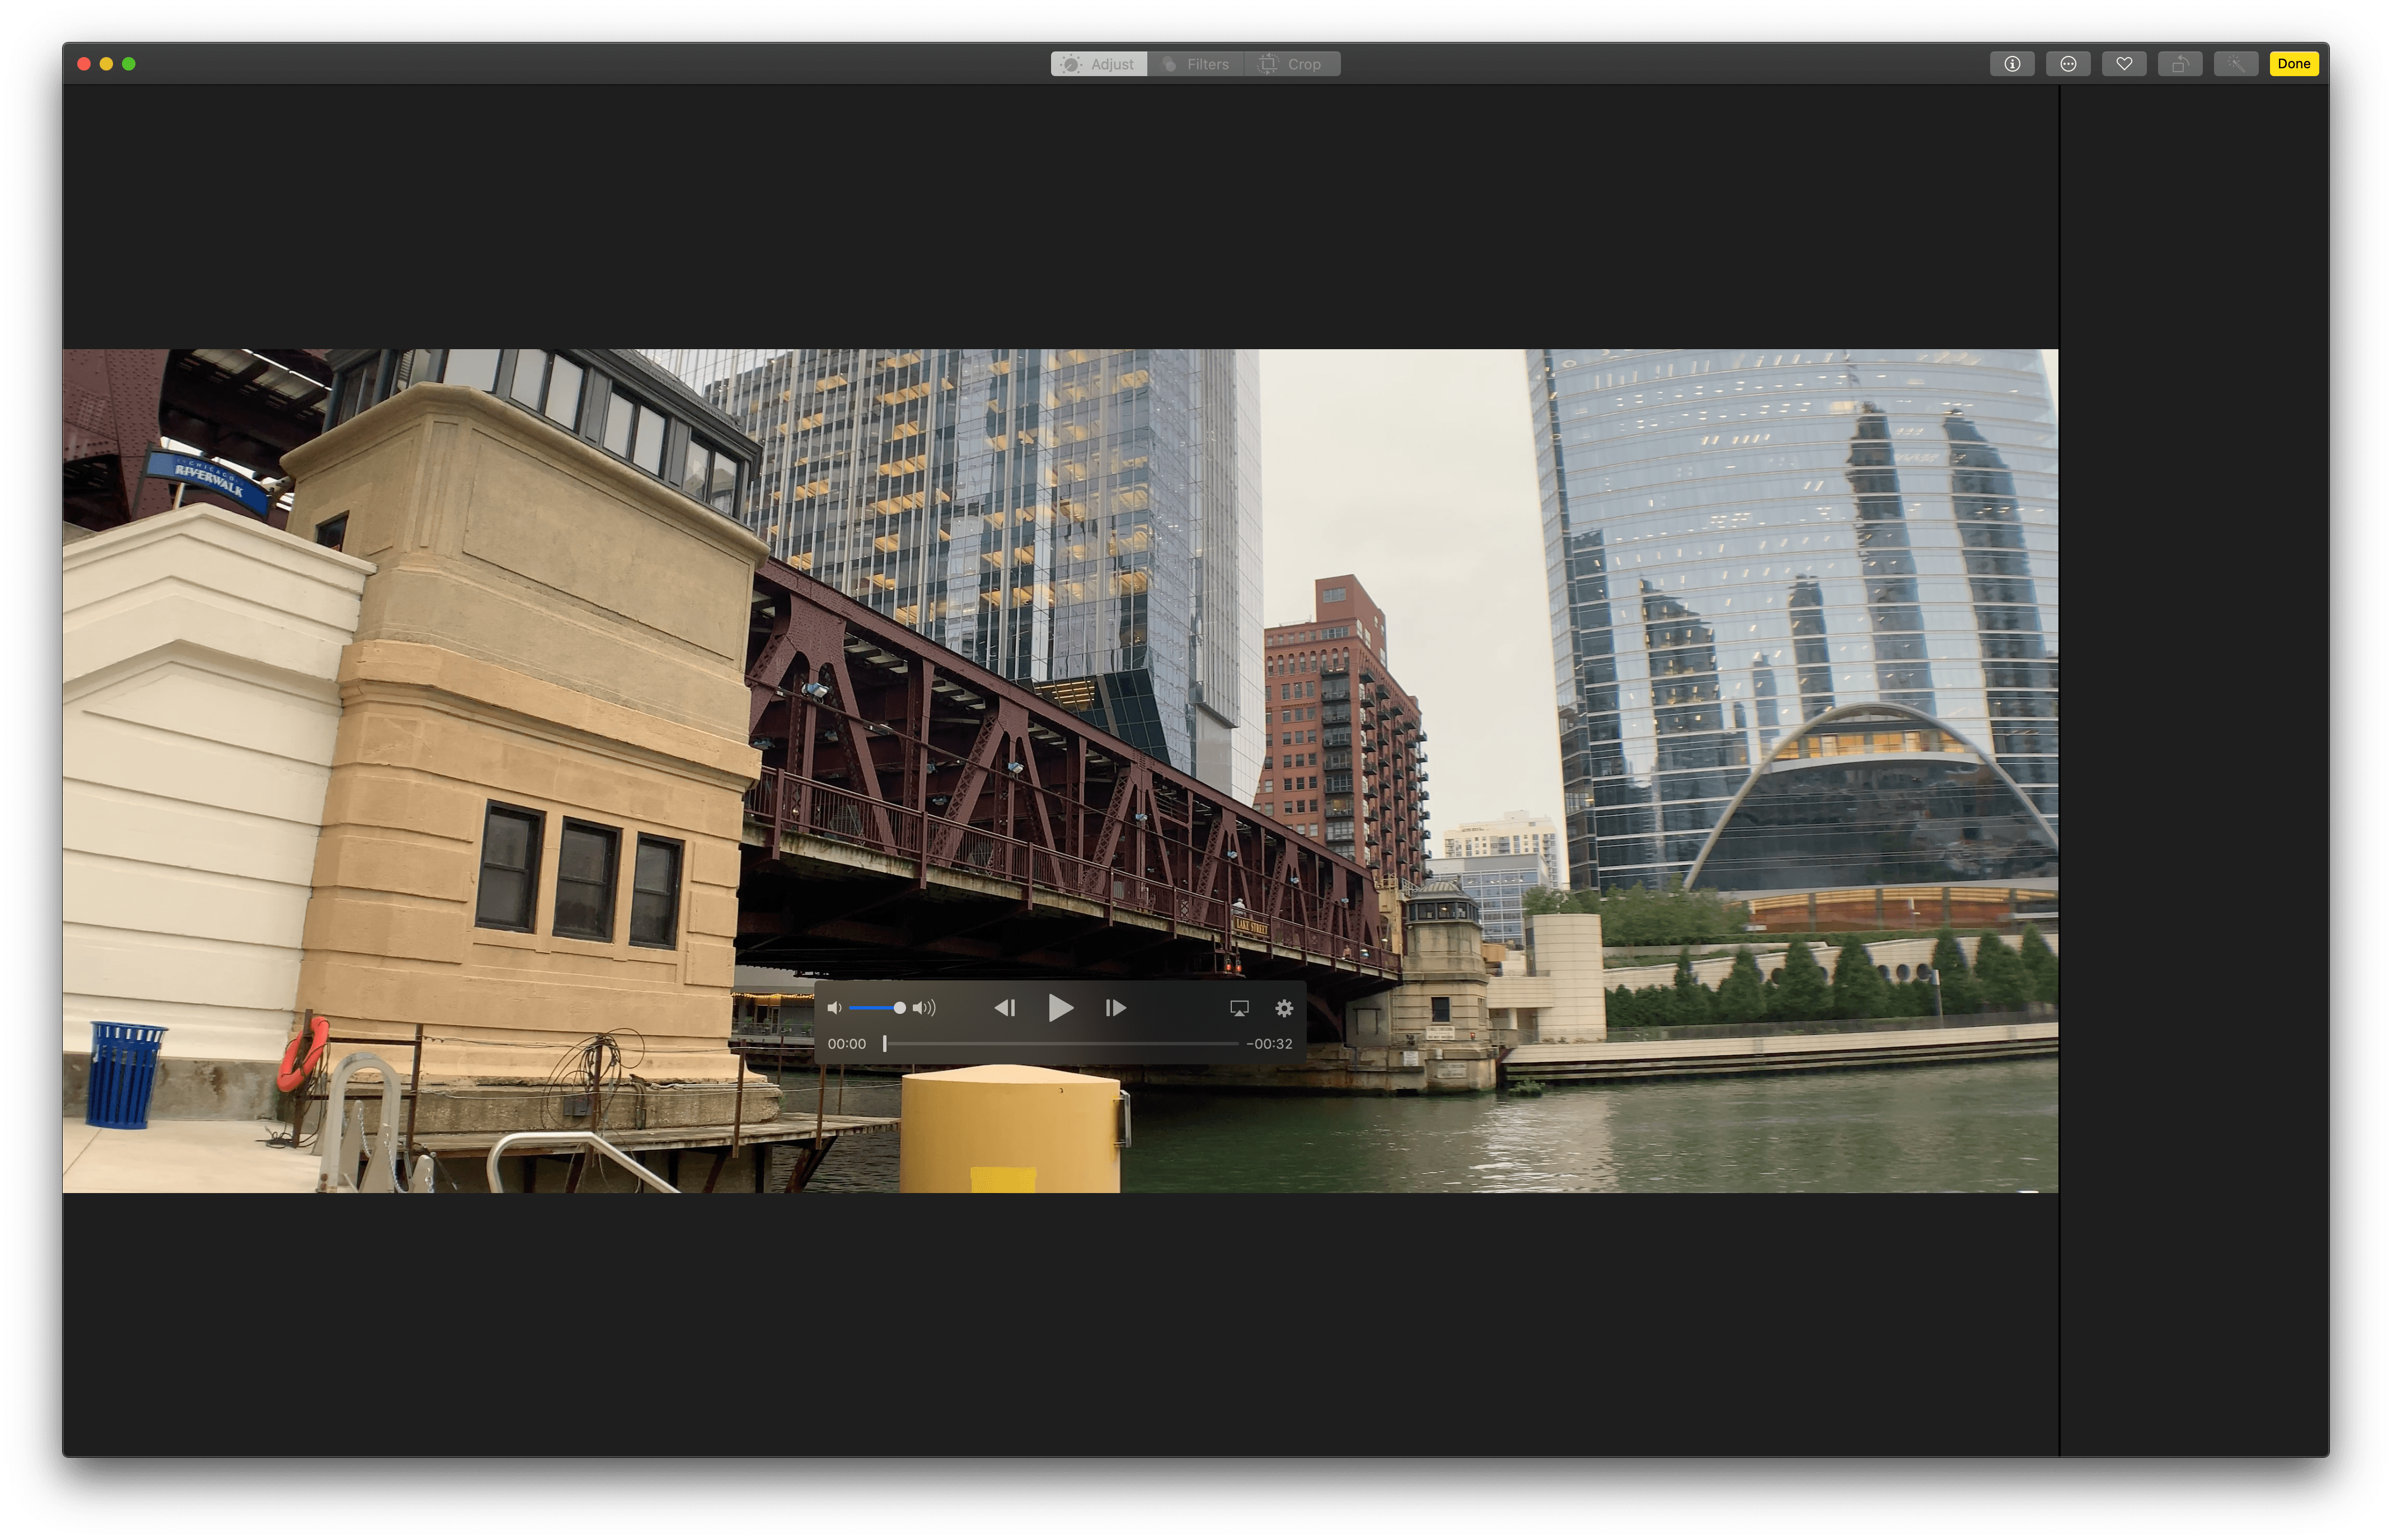 Unlike iOS, video editing on the Mac is limited to trimming in Photos.